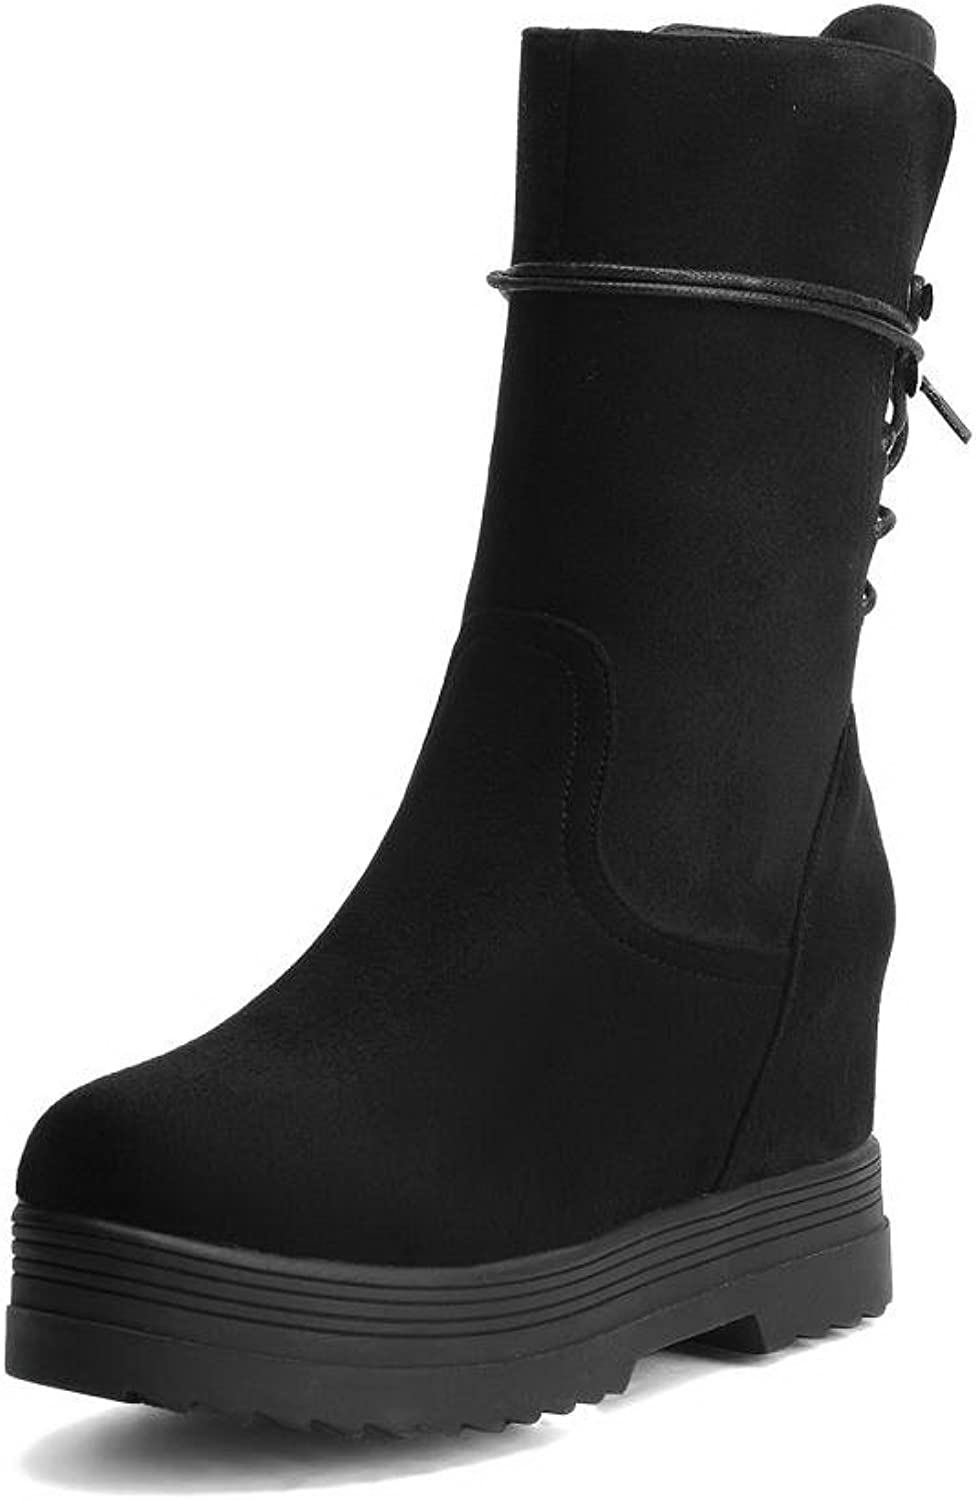 AllhqFashion Women's Round Closed Toe High Heels Mid Top Boots